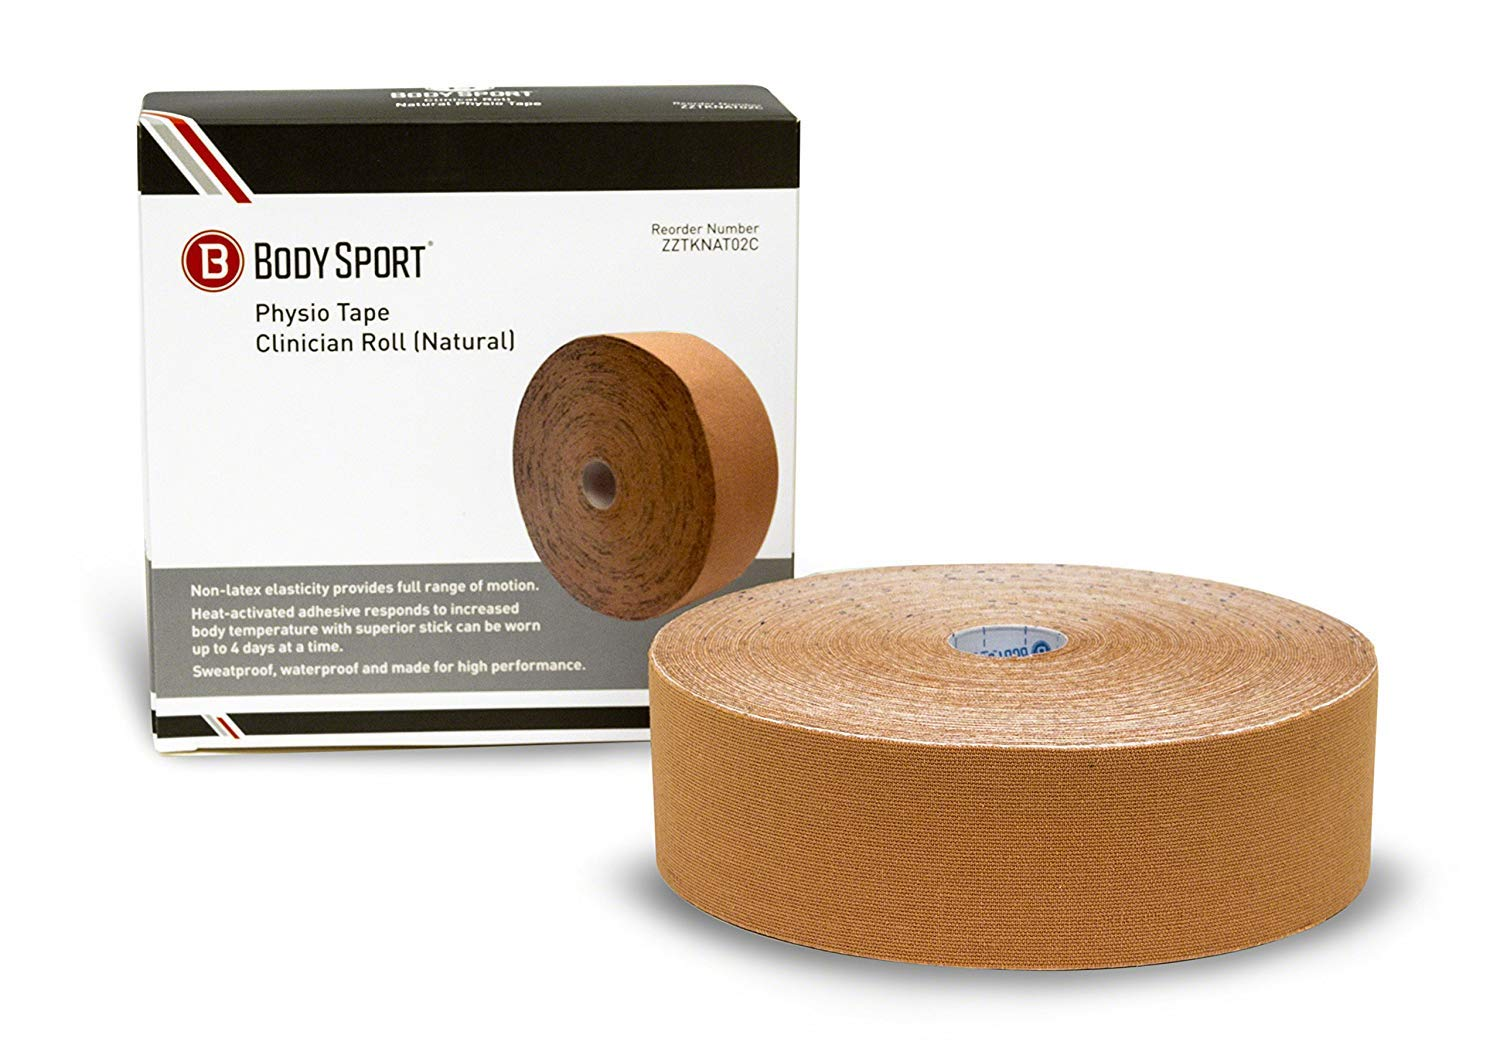 Body Sport Physio Tape, Kinesiology Tape to Support Muscles and Joints, Prevent Injury - 2 in x 33.5 yds - Natural by Body Sport